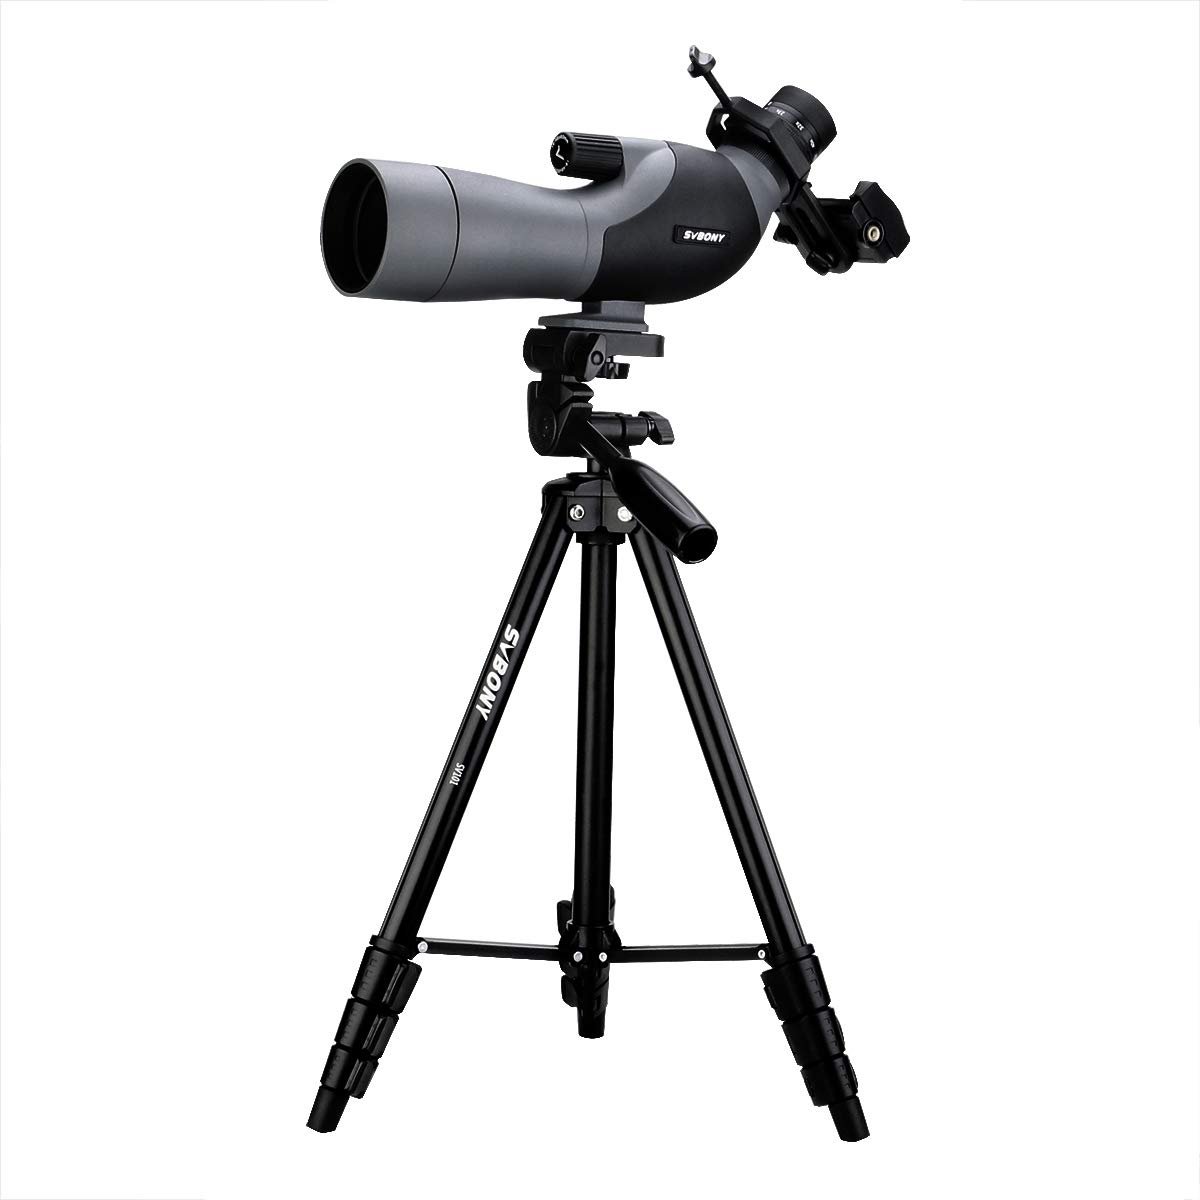 SVBONY SV402 Spotting Scope with Tripod and Phone Adapter 16-48x60mm FMC 45 Degree Angled Eyepiece for Bird Watching Hunting Target Shooting Hunting by SVBONY